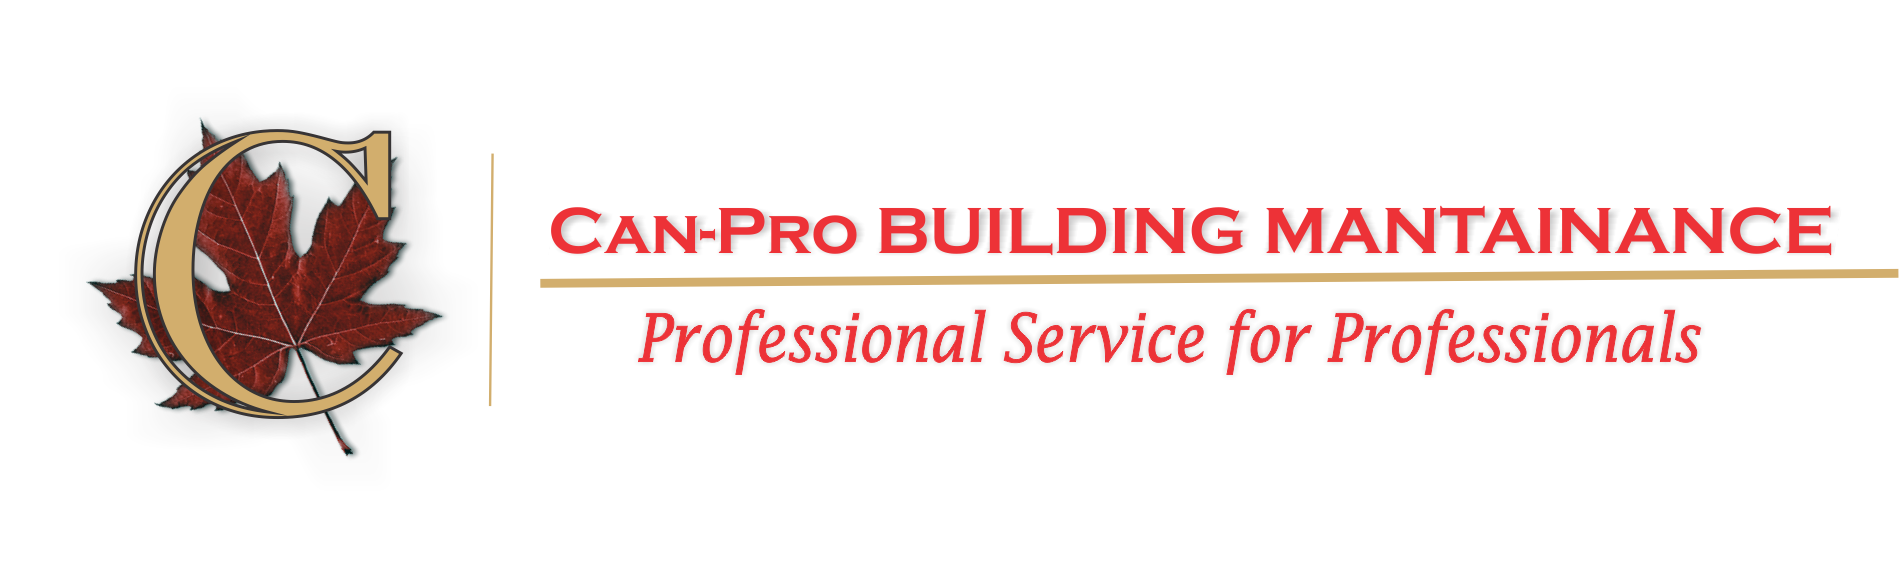 CanPro Building Maintenance